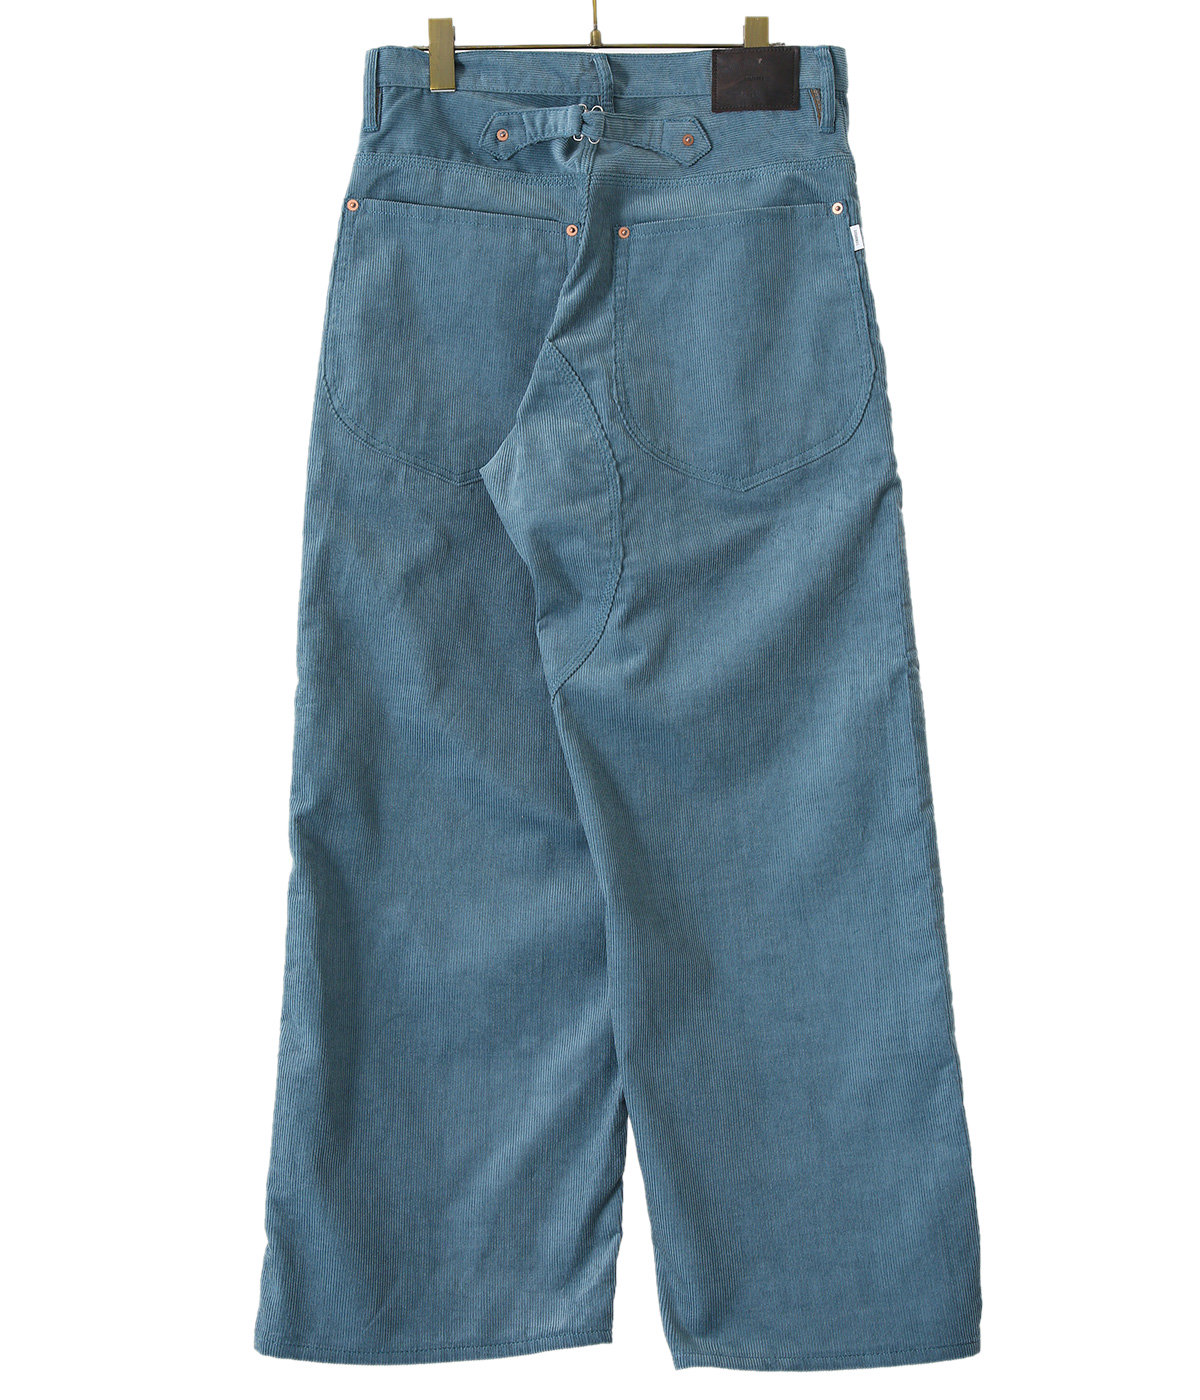 【予約】CORDUROY DOUBLE KNEE DENIM PANTS